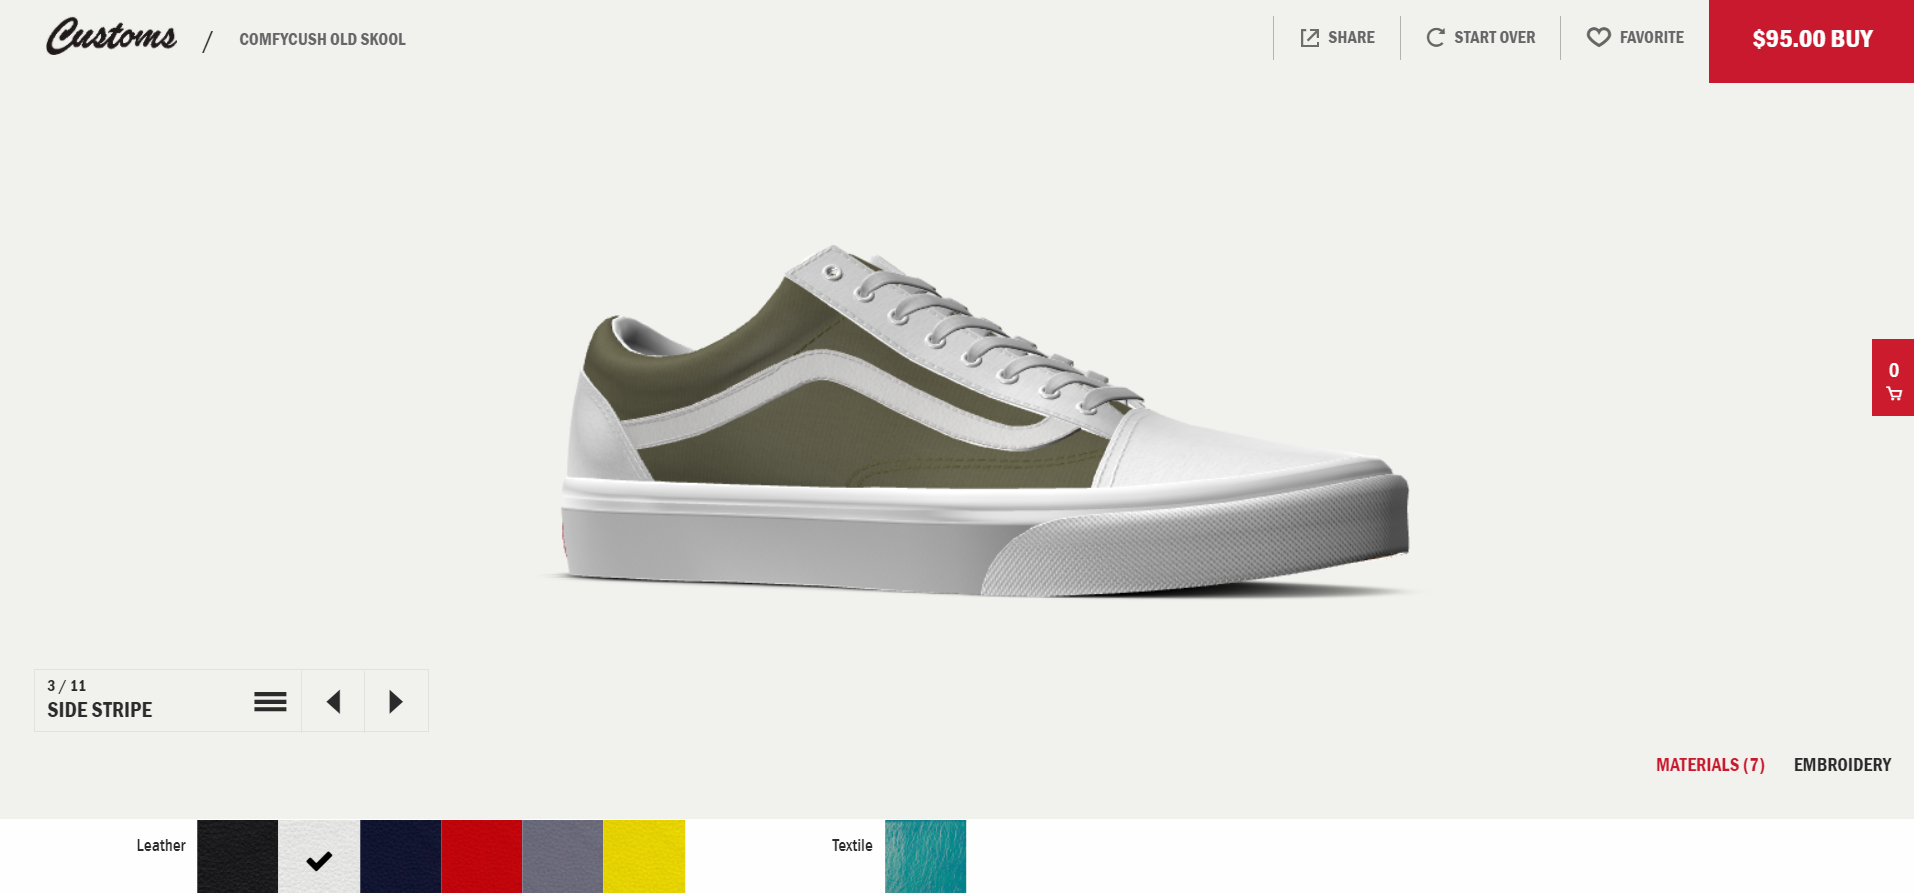 Vans product configurator - one of the best practices